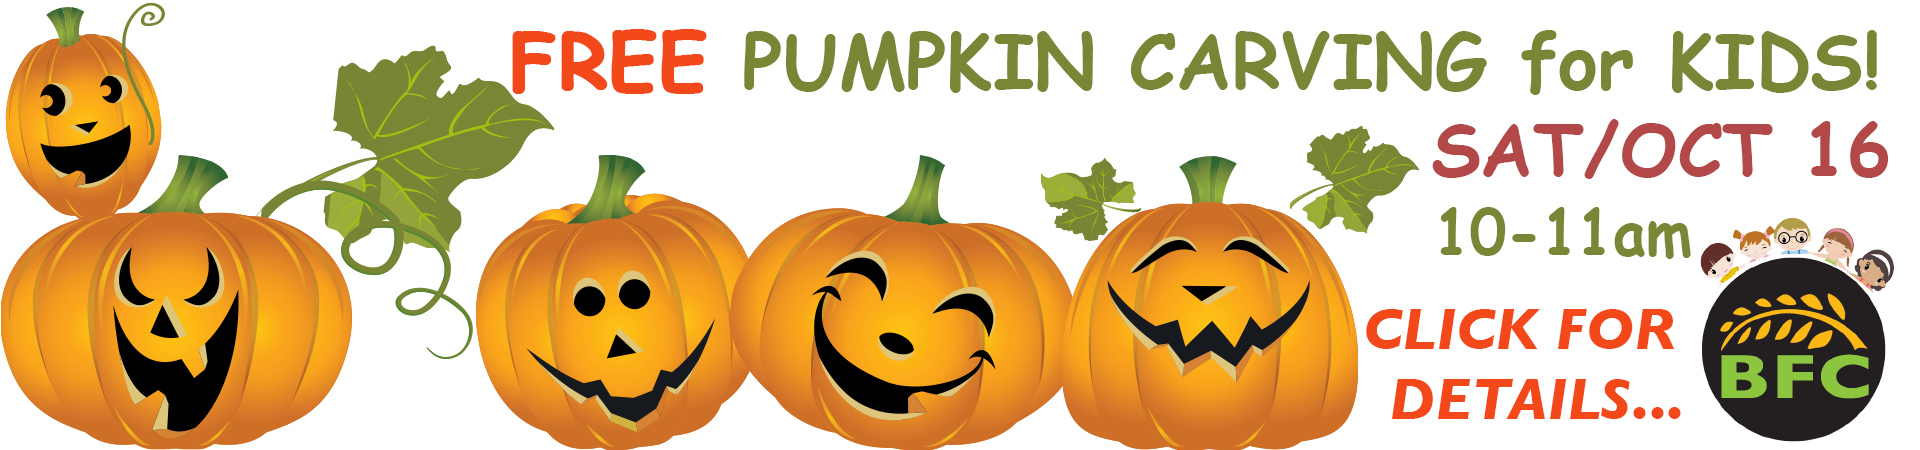 Pumpkin Carving Event at the Co-op